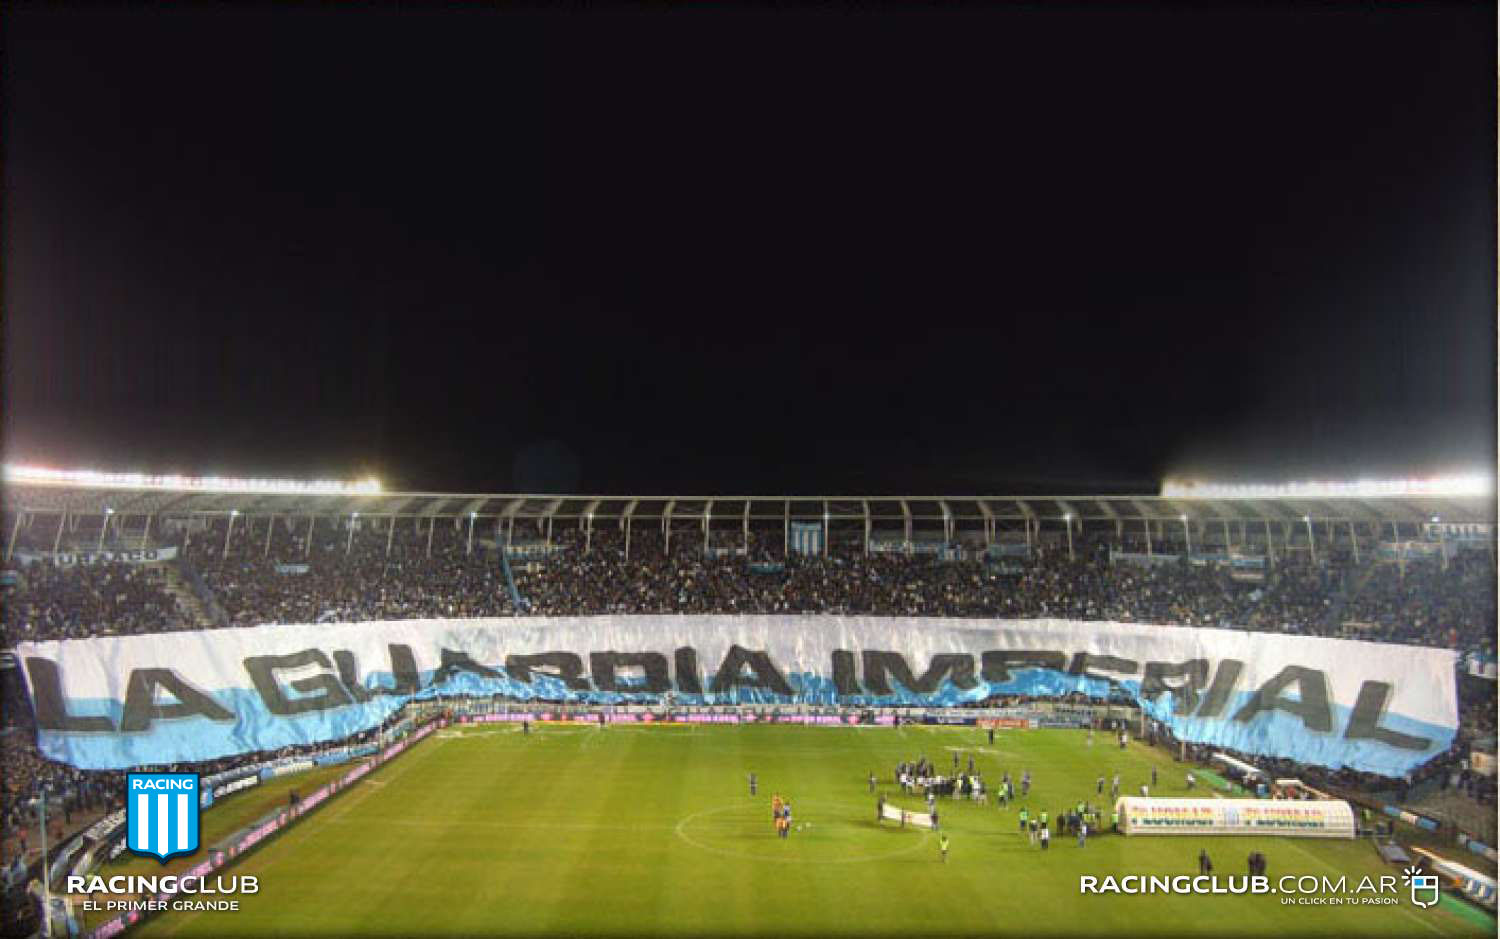 Estadio Presidente Perón Racing Club Sitio Oficial